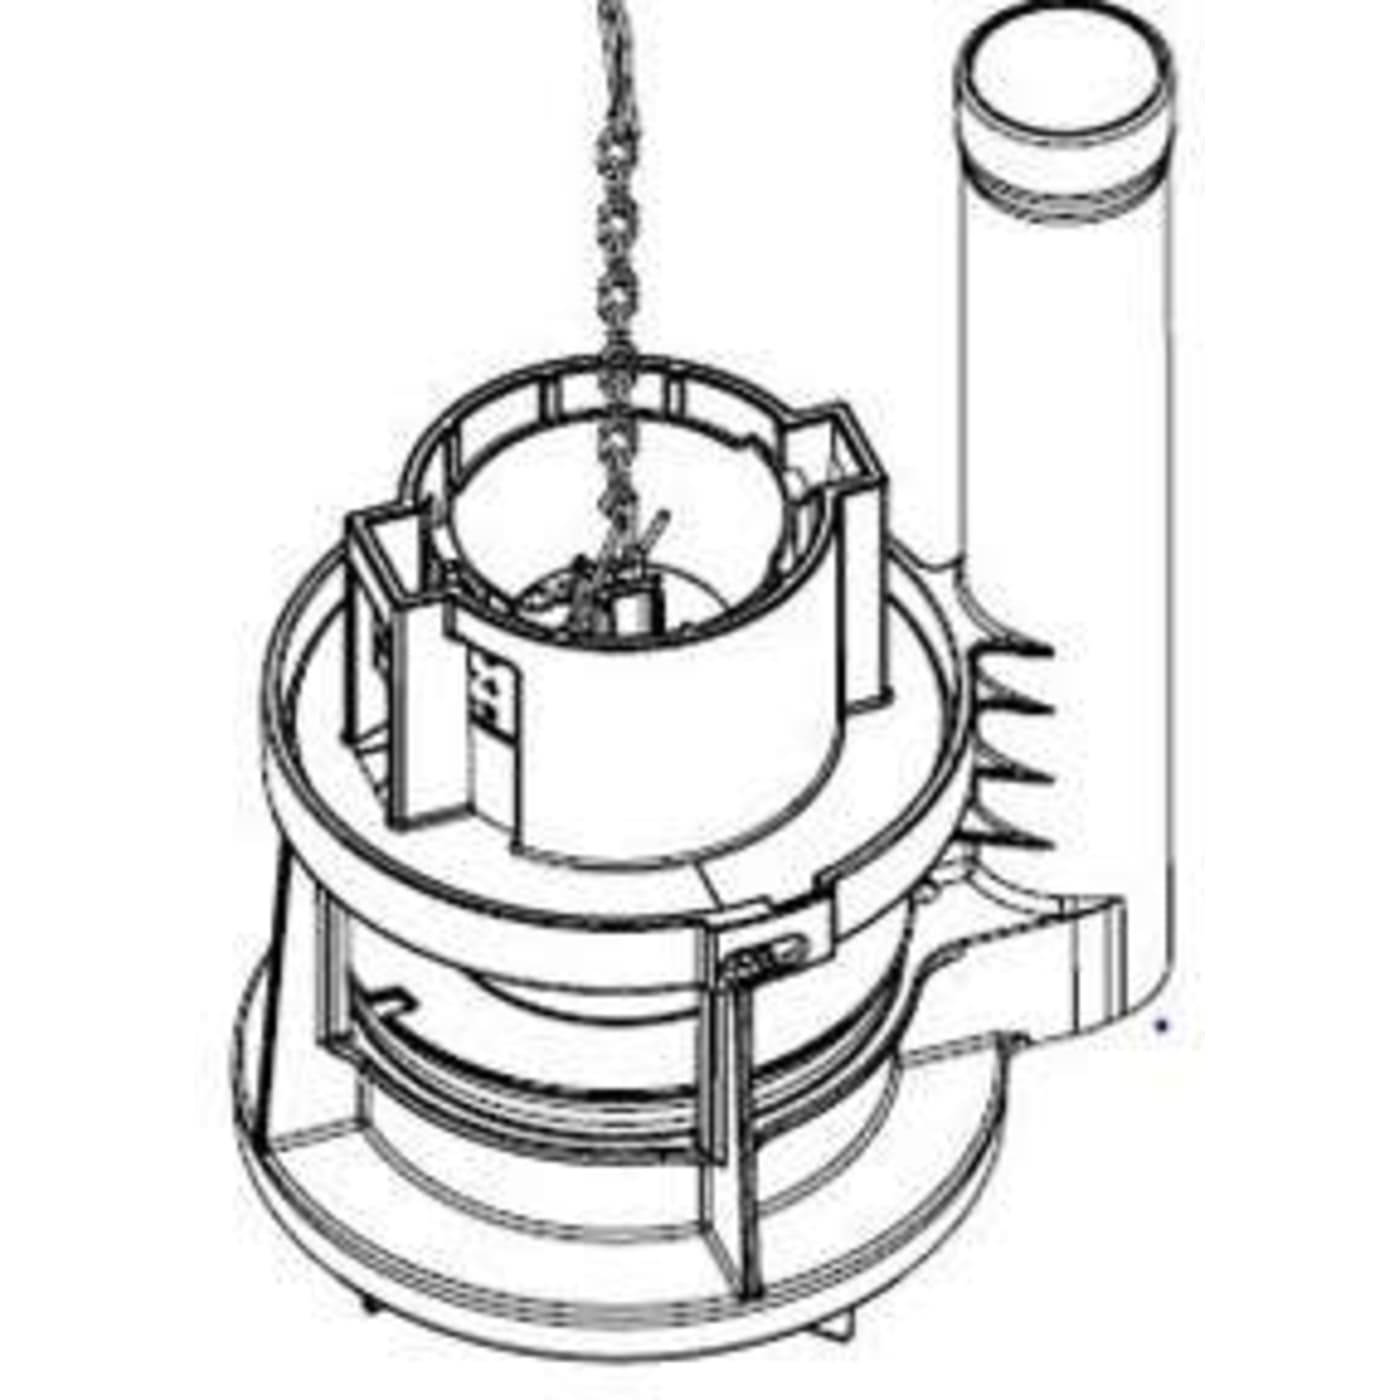 toto toto thu451 10a a drain valve assembly goedekers com